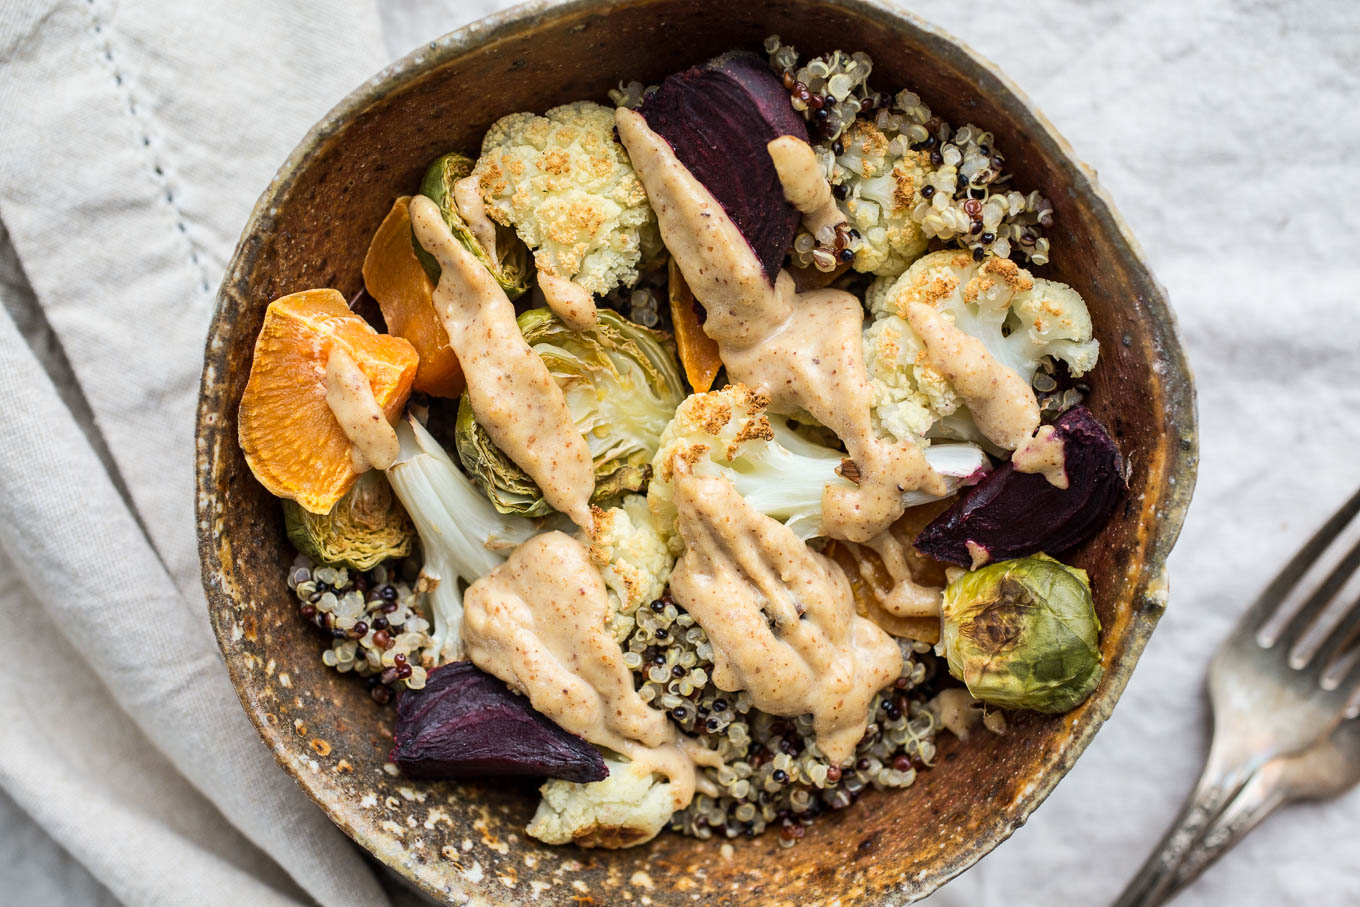 Roasted Vegetable and Quinoa Bowls with Coconut-Almond Sauce | saltedplains.com